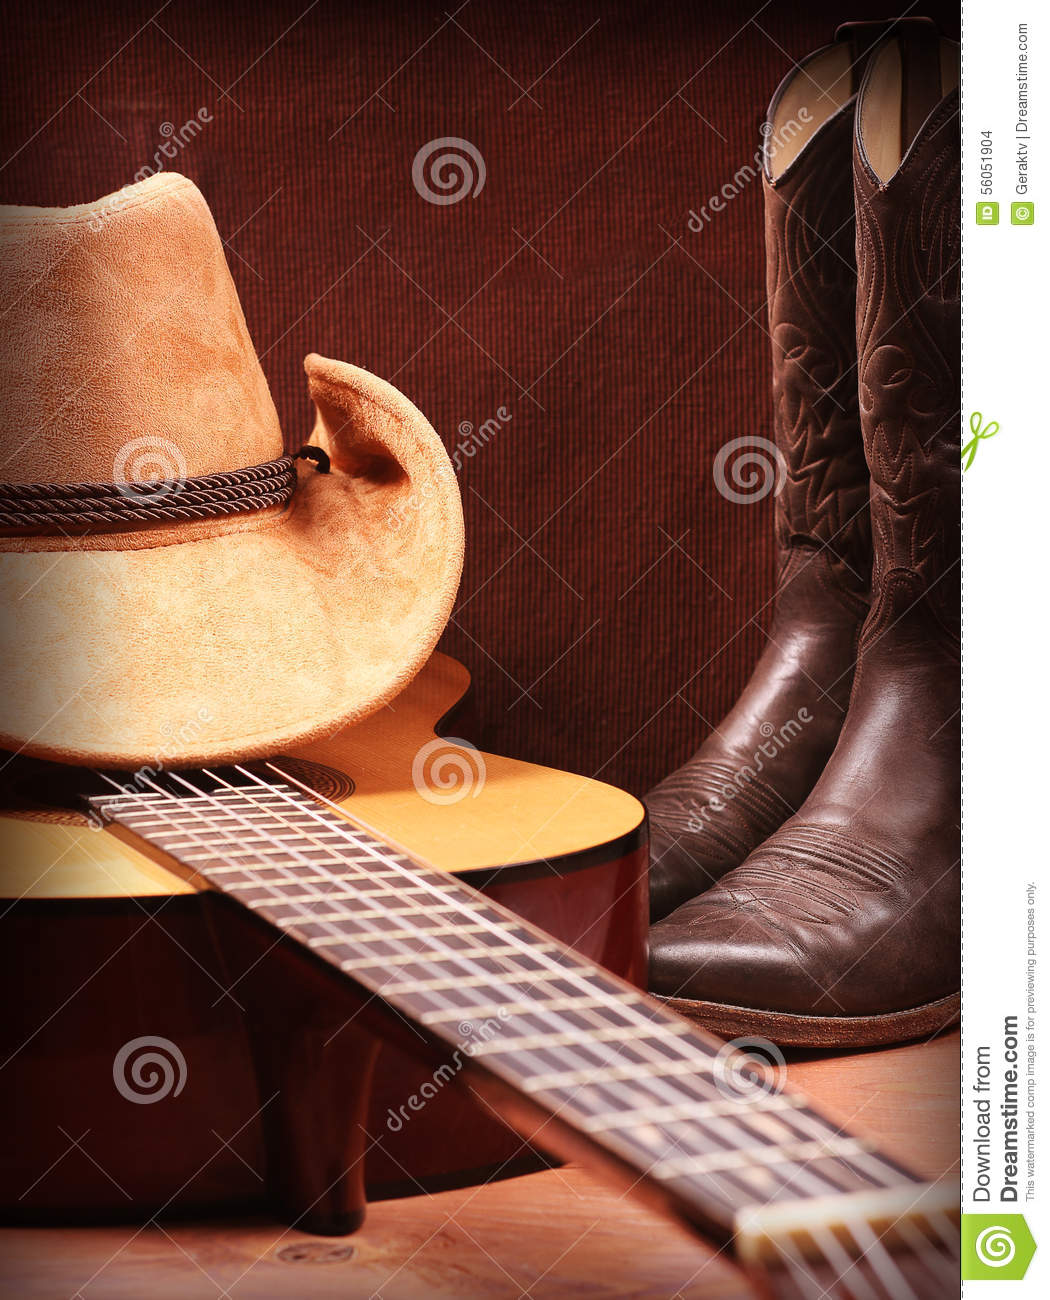 Country Music Wallpaper: Western Background With Cowboy Clothes And Old Paper For